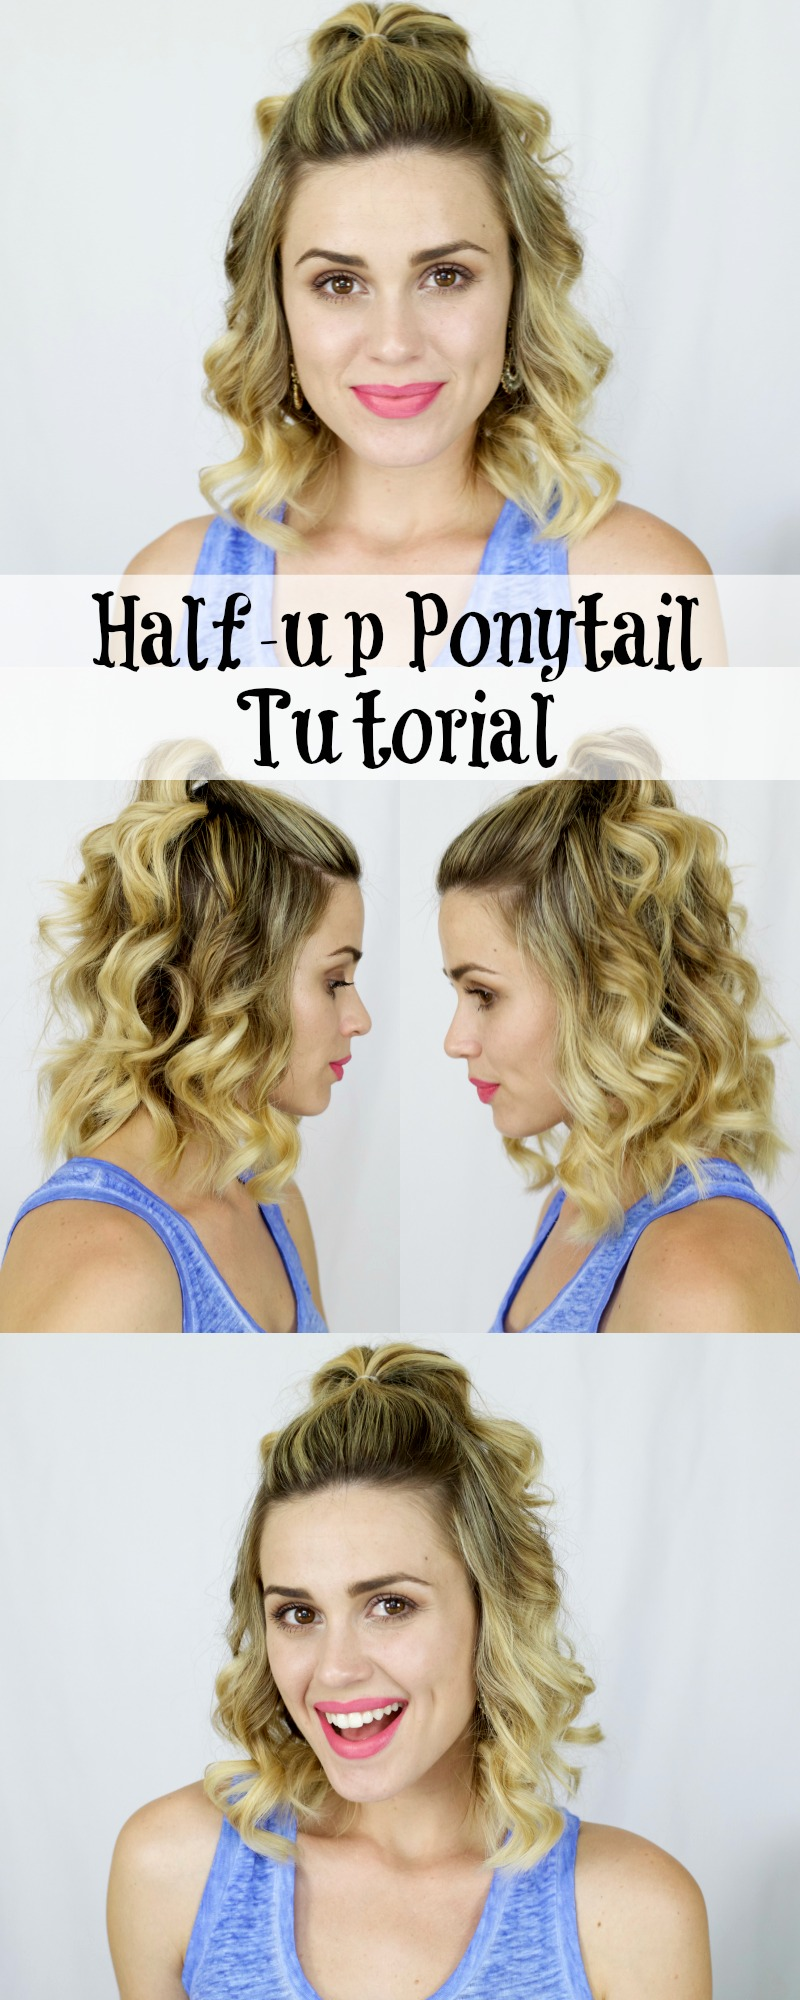 halfup ponytail tutorial